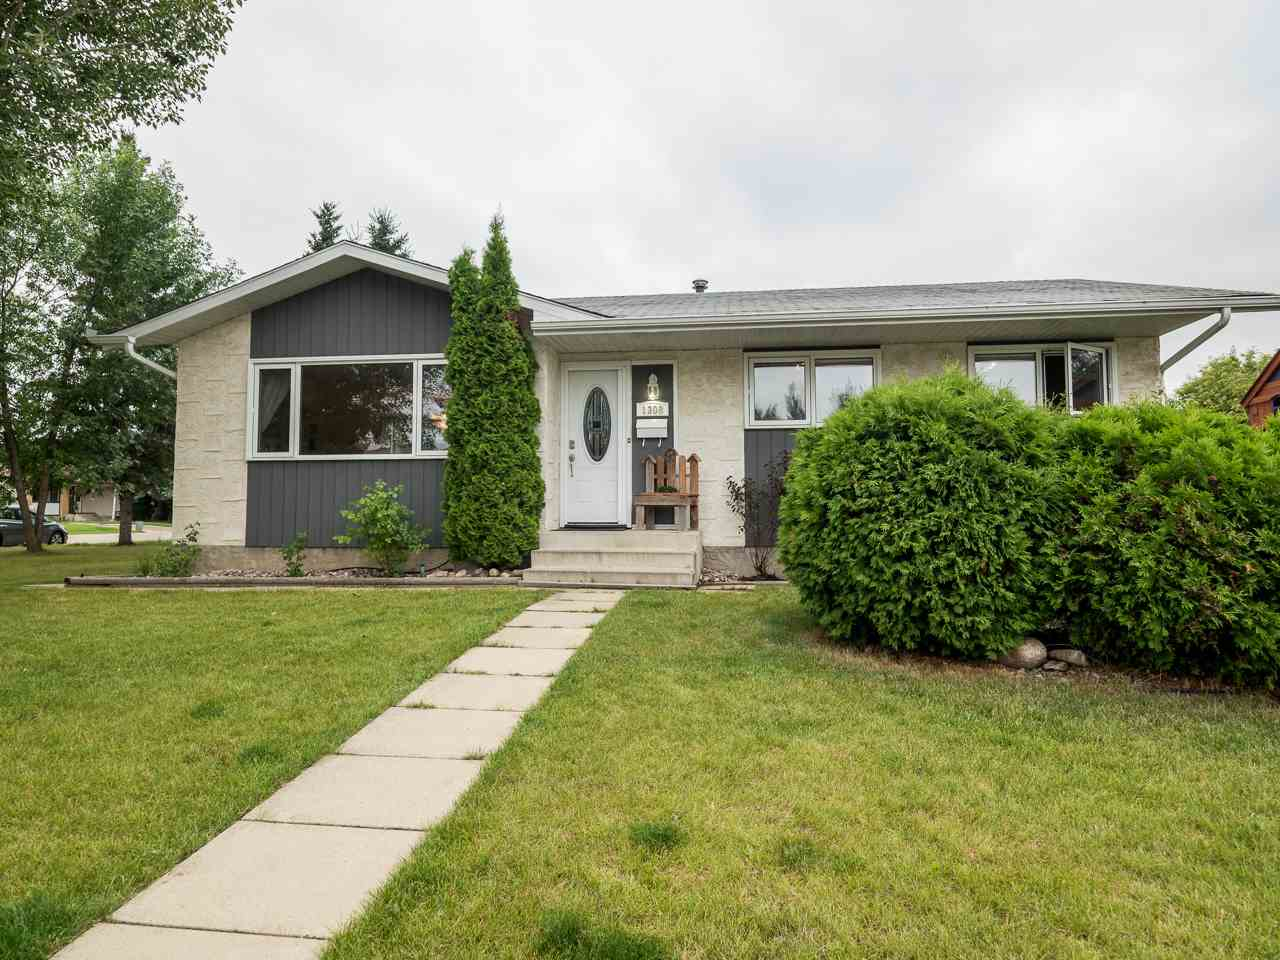 Main Photo: 1308 69 Street NW in Edmonton: Zone 29 House for sale : MLS® # E4077171